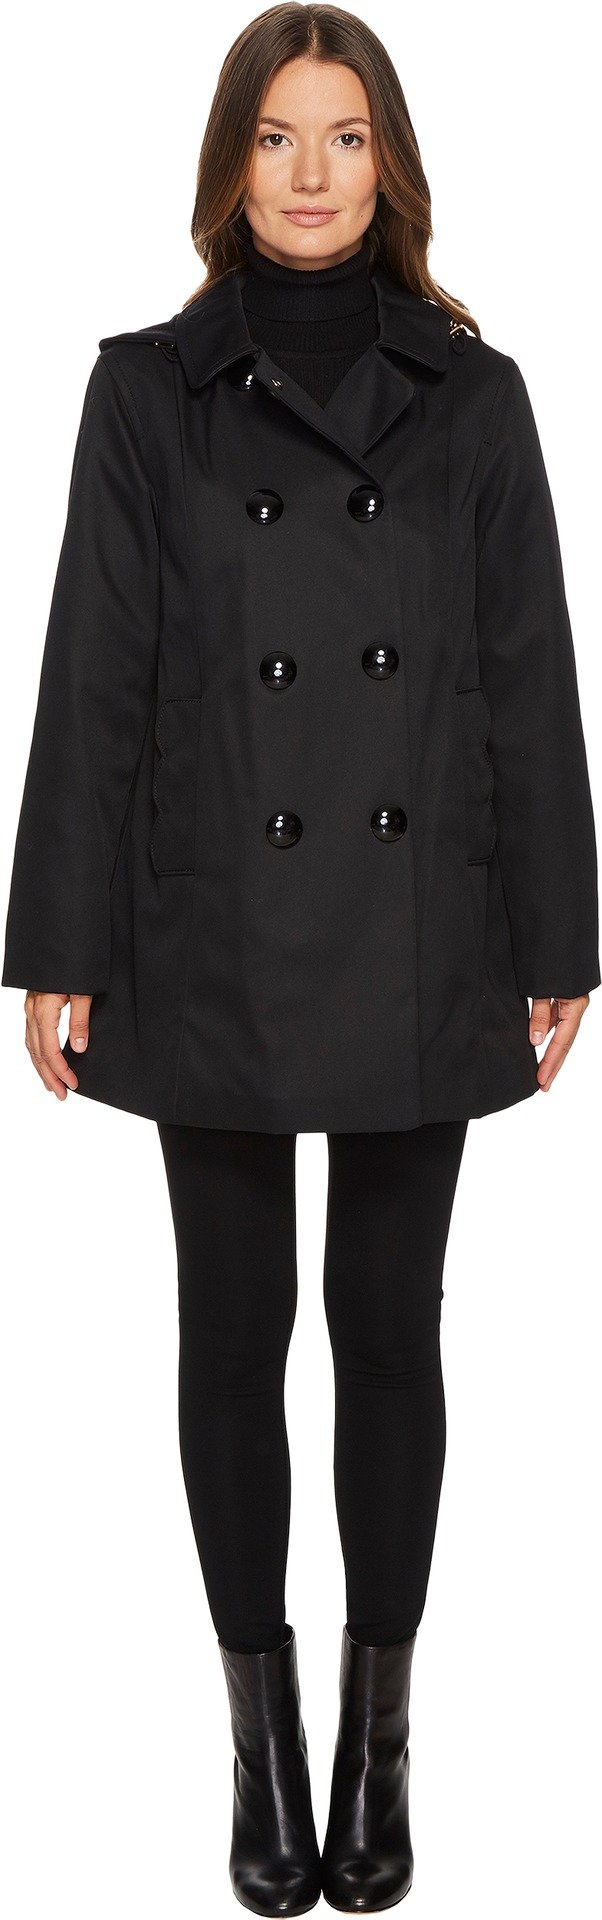 Kate Spade New York Womens Rain Double-Breasted Hooded Jacket Black MD One Size